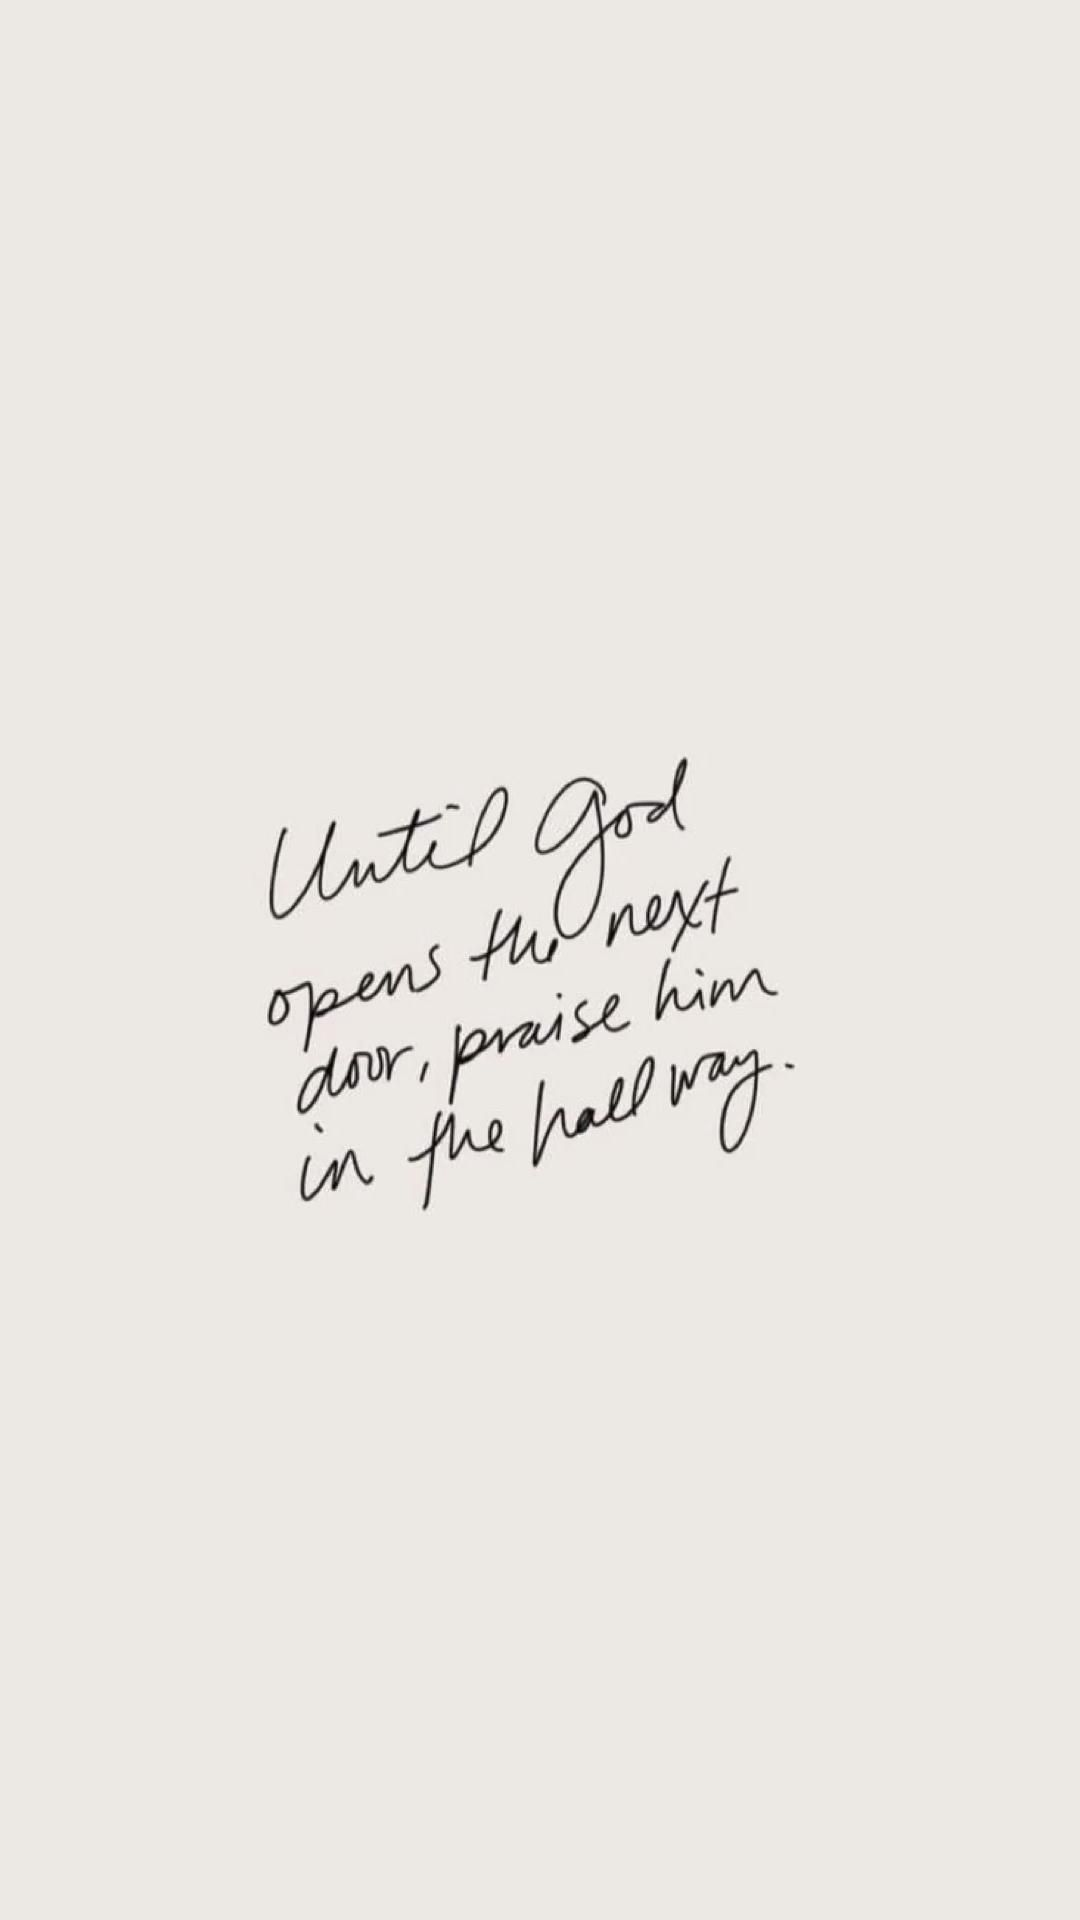 𝒜𝒹.𝒱𝒾𝓃𝓉𝓏𝑜𝓃𝑒   Daily Quotes & Wallpapers